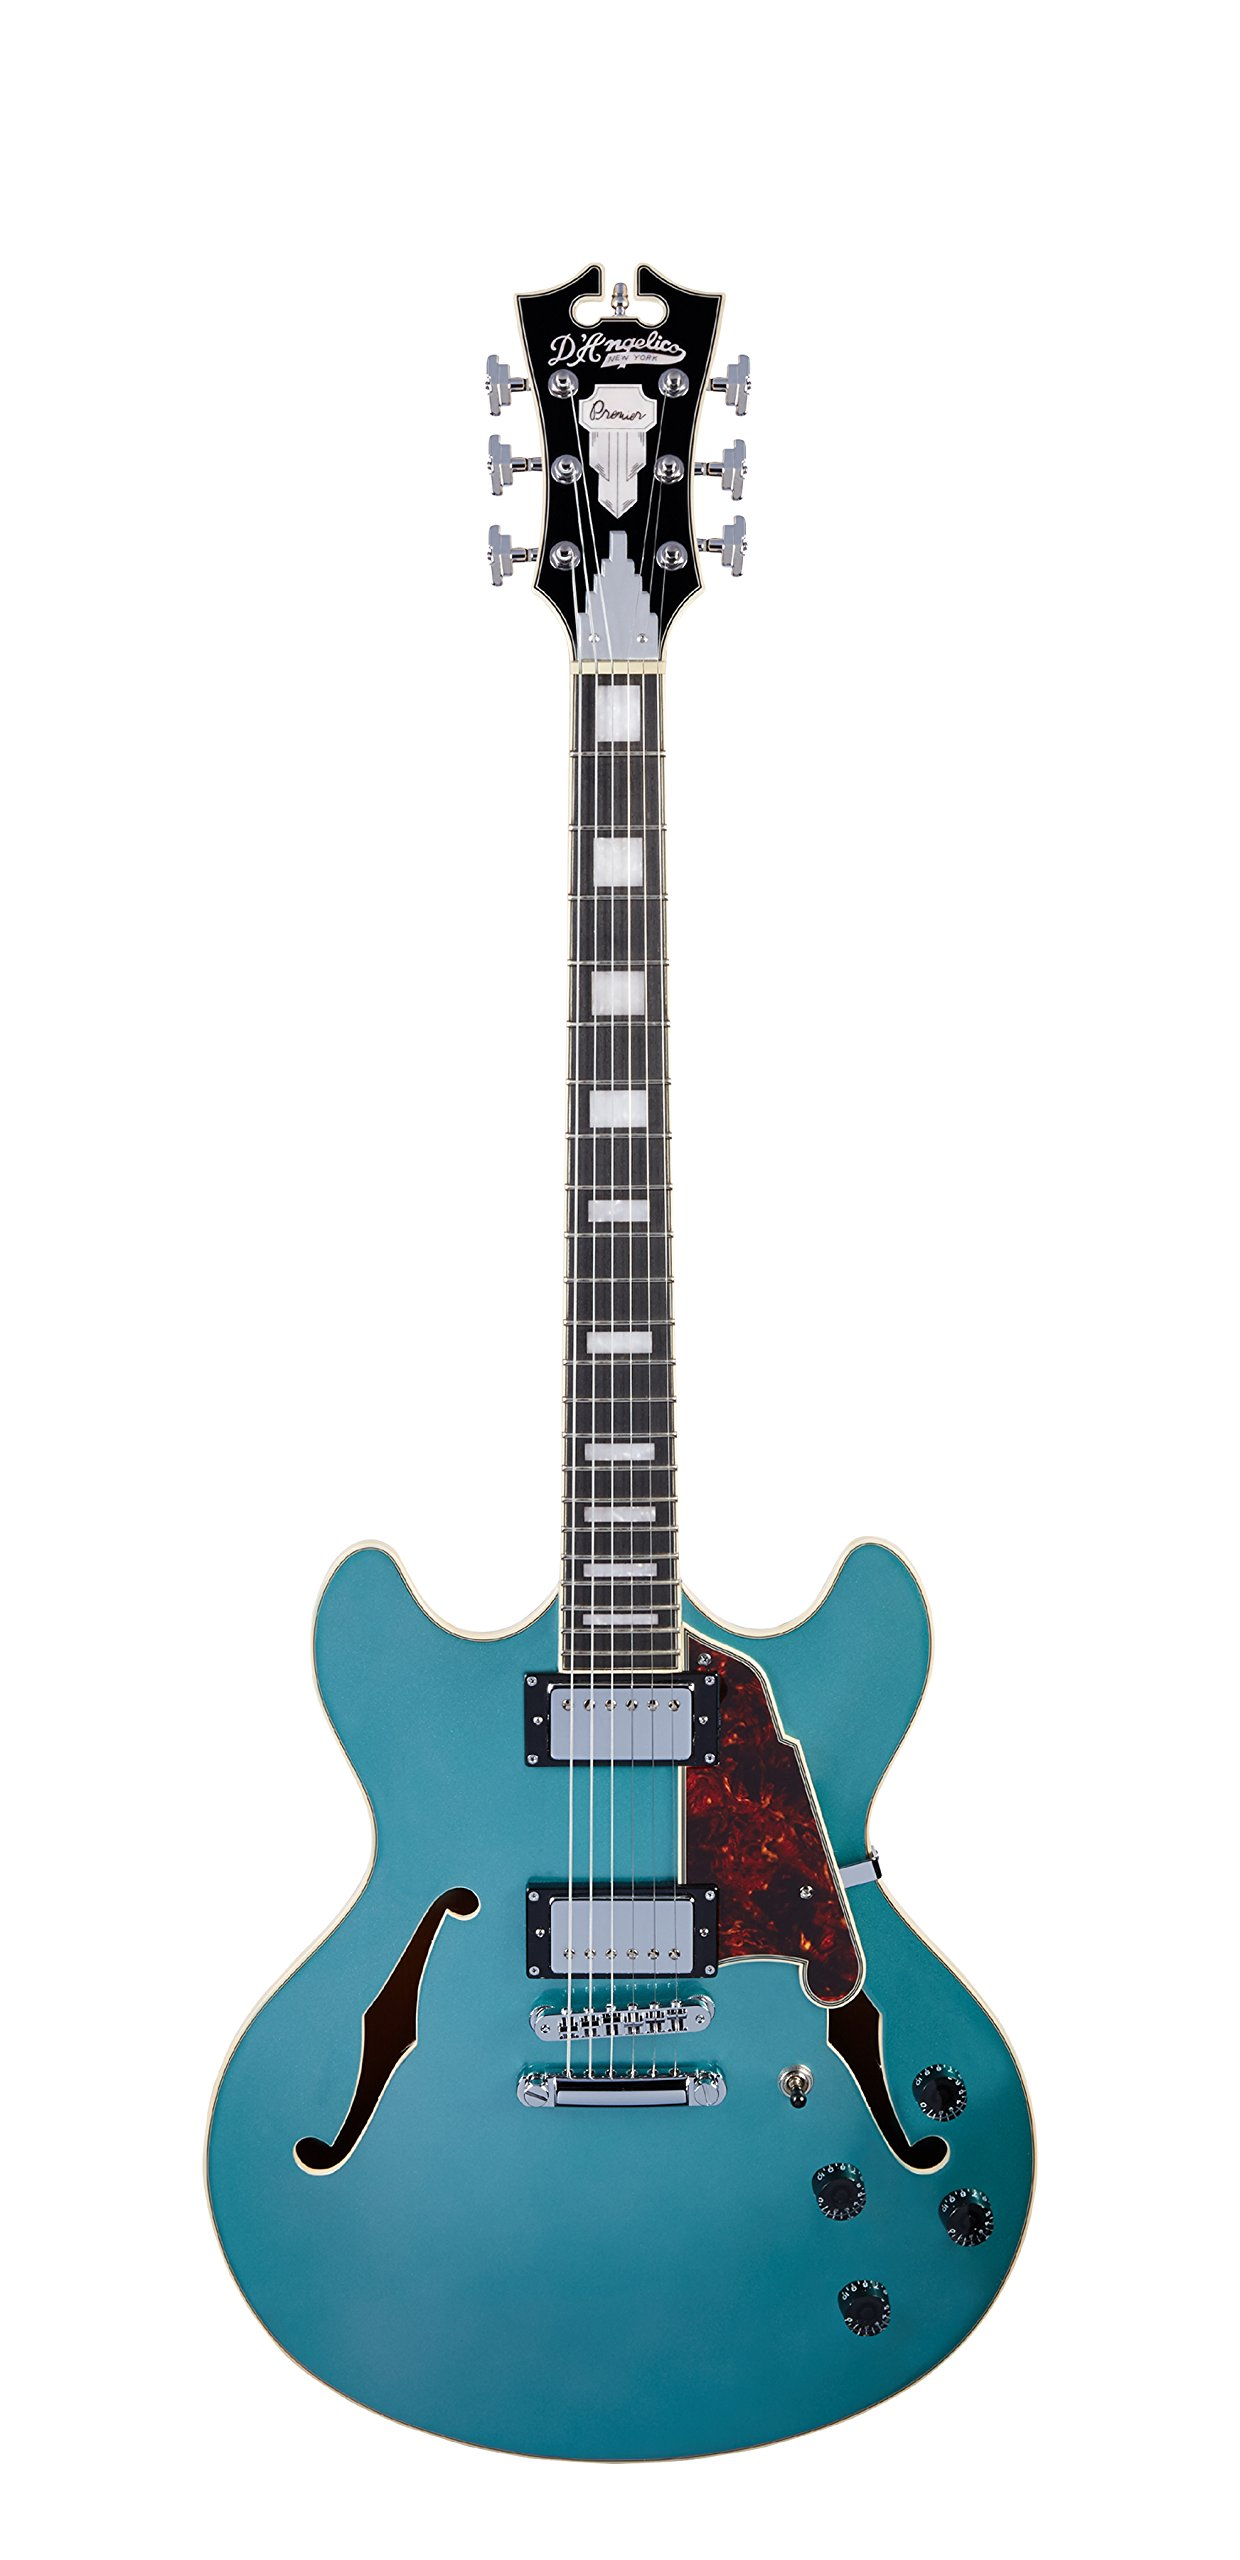 Cheap D Angelico Premier DC Semi-Hollow Electric Guitar w/ Stop-Bar Tailpiece - Ocean Turquoise Black Friday & Cyber Monday 2019